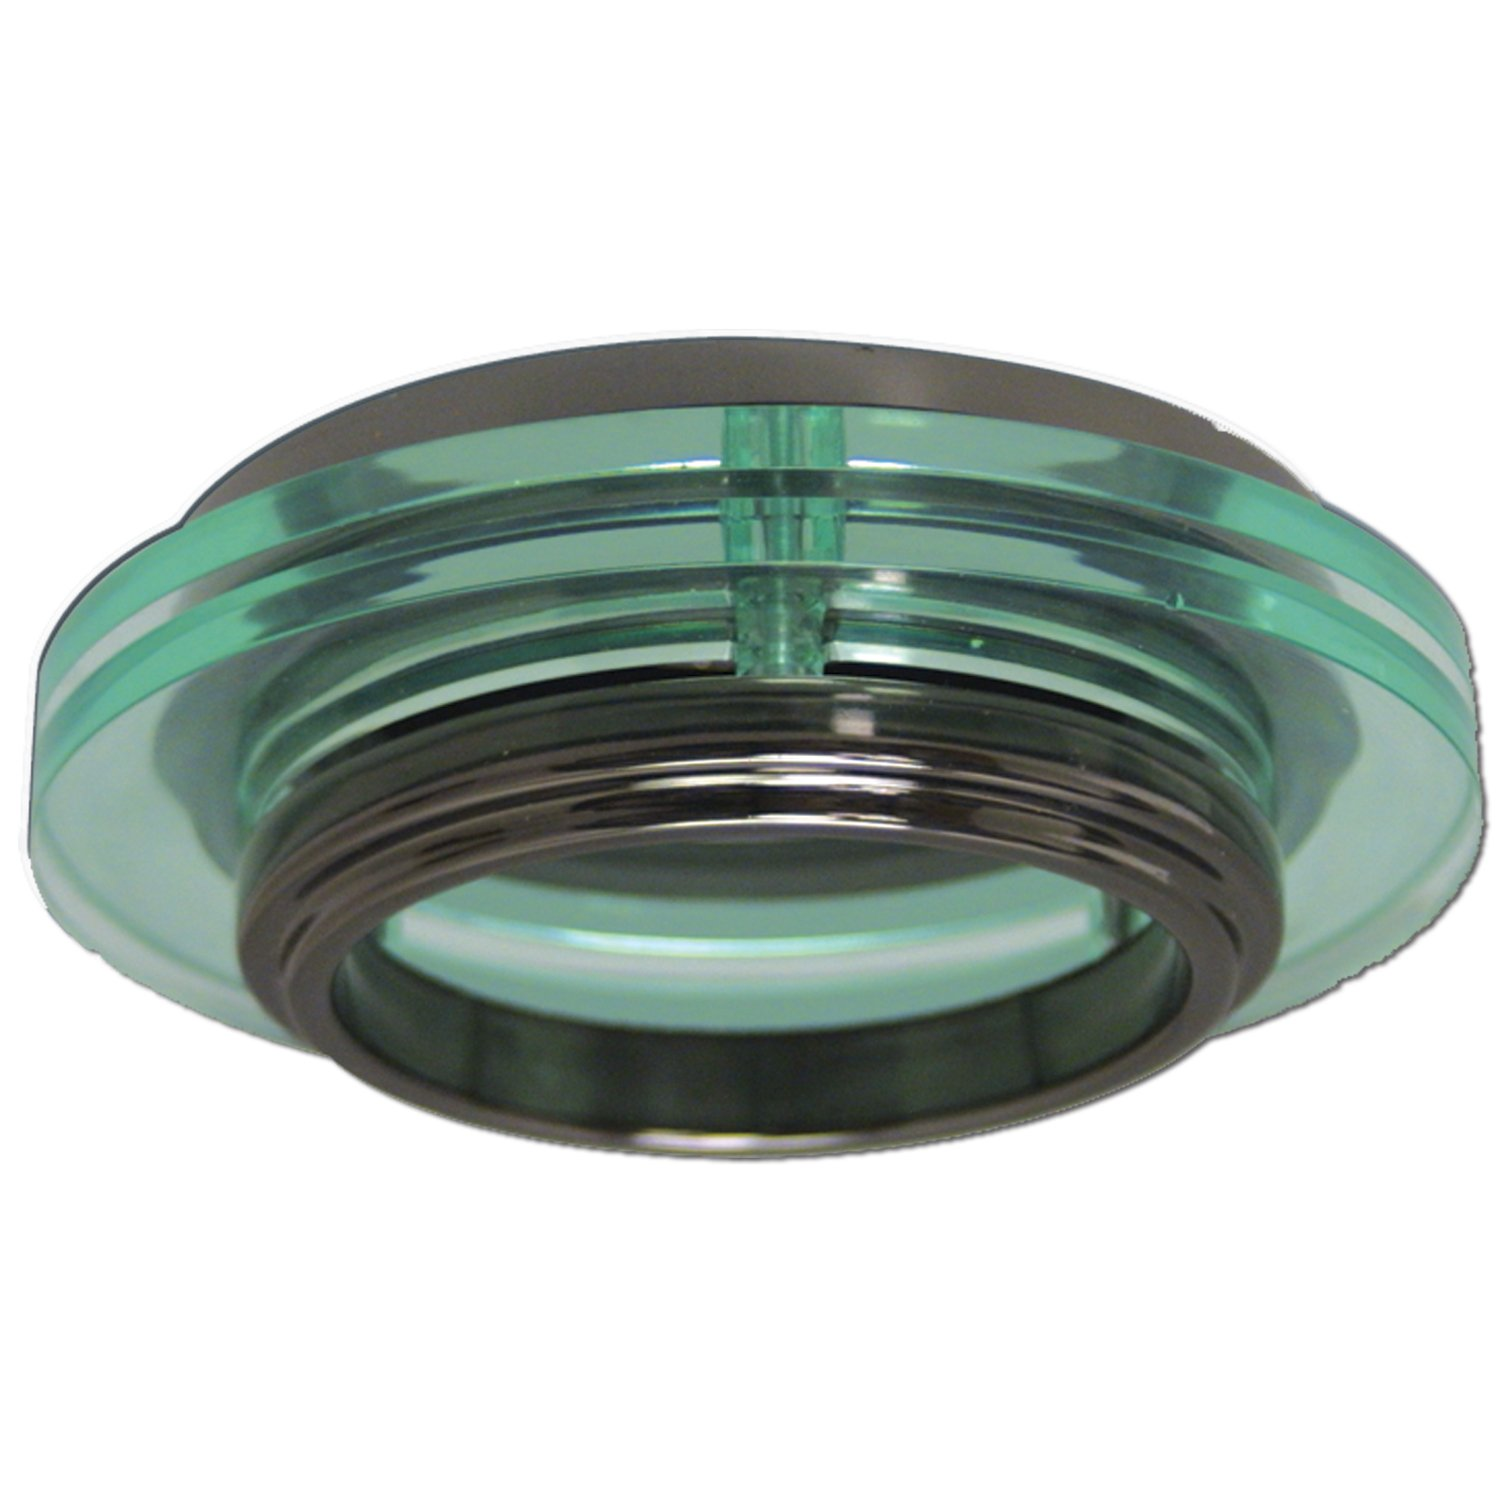 Halo Recessed 946BC 4-Inch 120-Volt Trim Metropolitan Black Chrome Accent with Translucent Rings by Halo Recessed